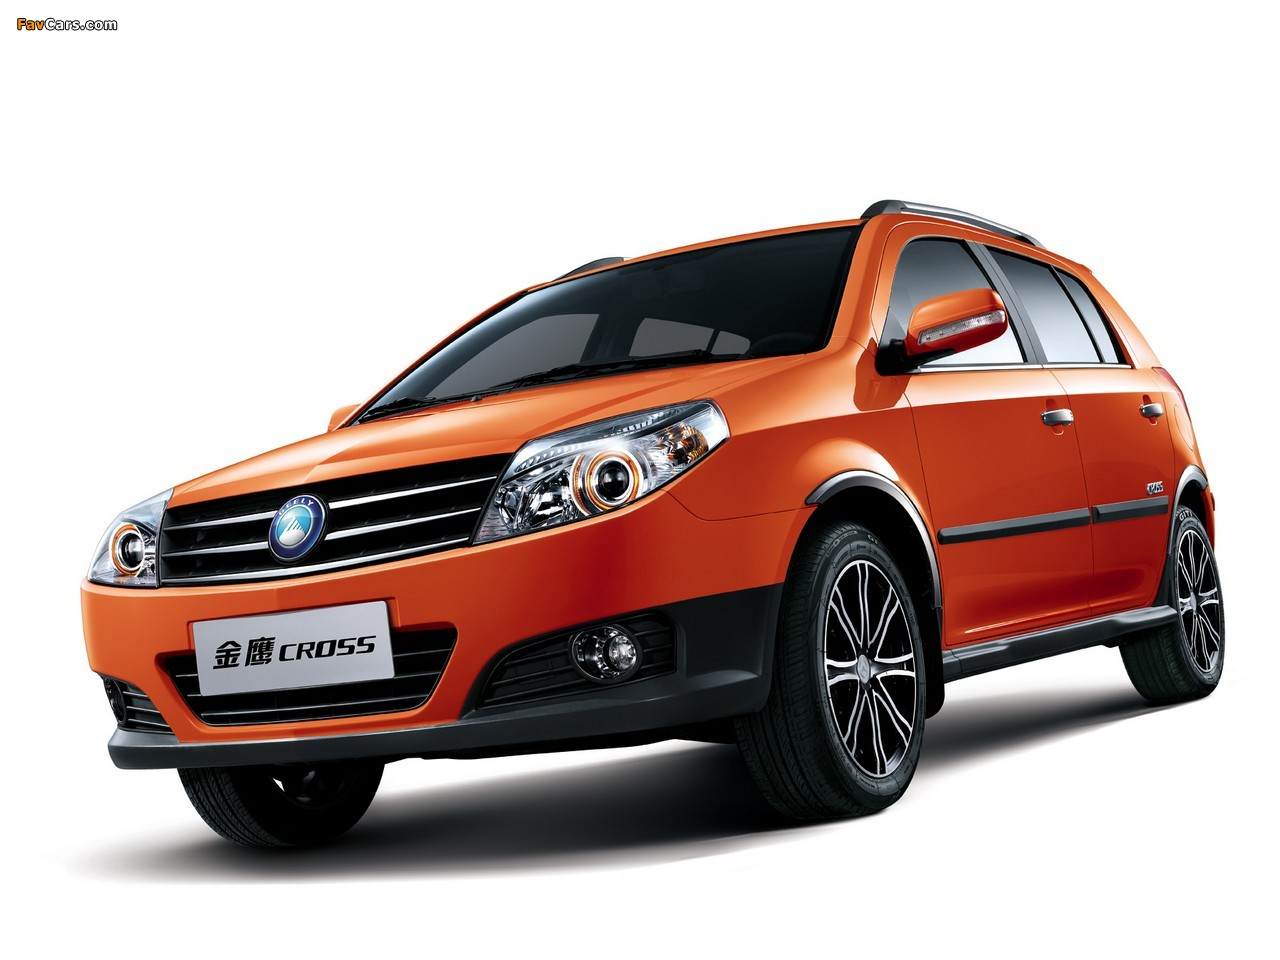 Pictures of Geely MK Cross 2010 (1280 x 960)